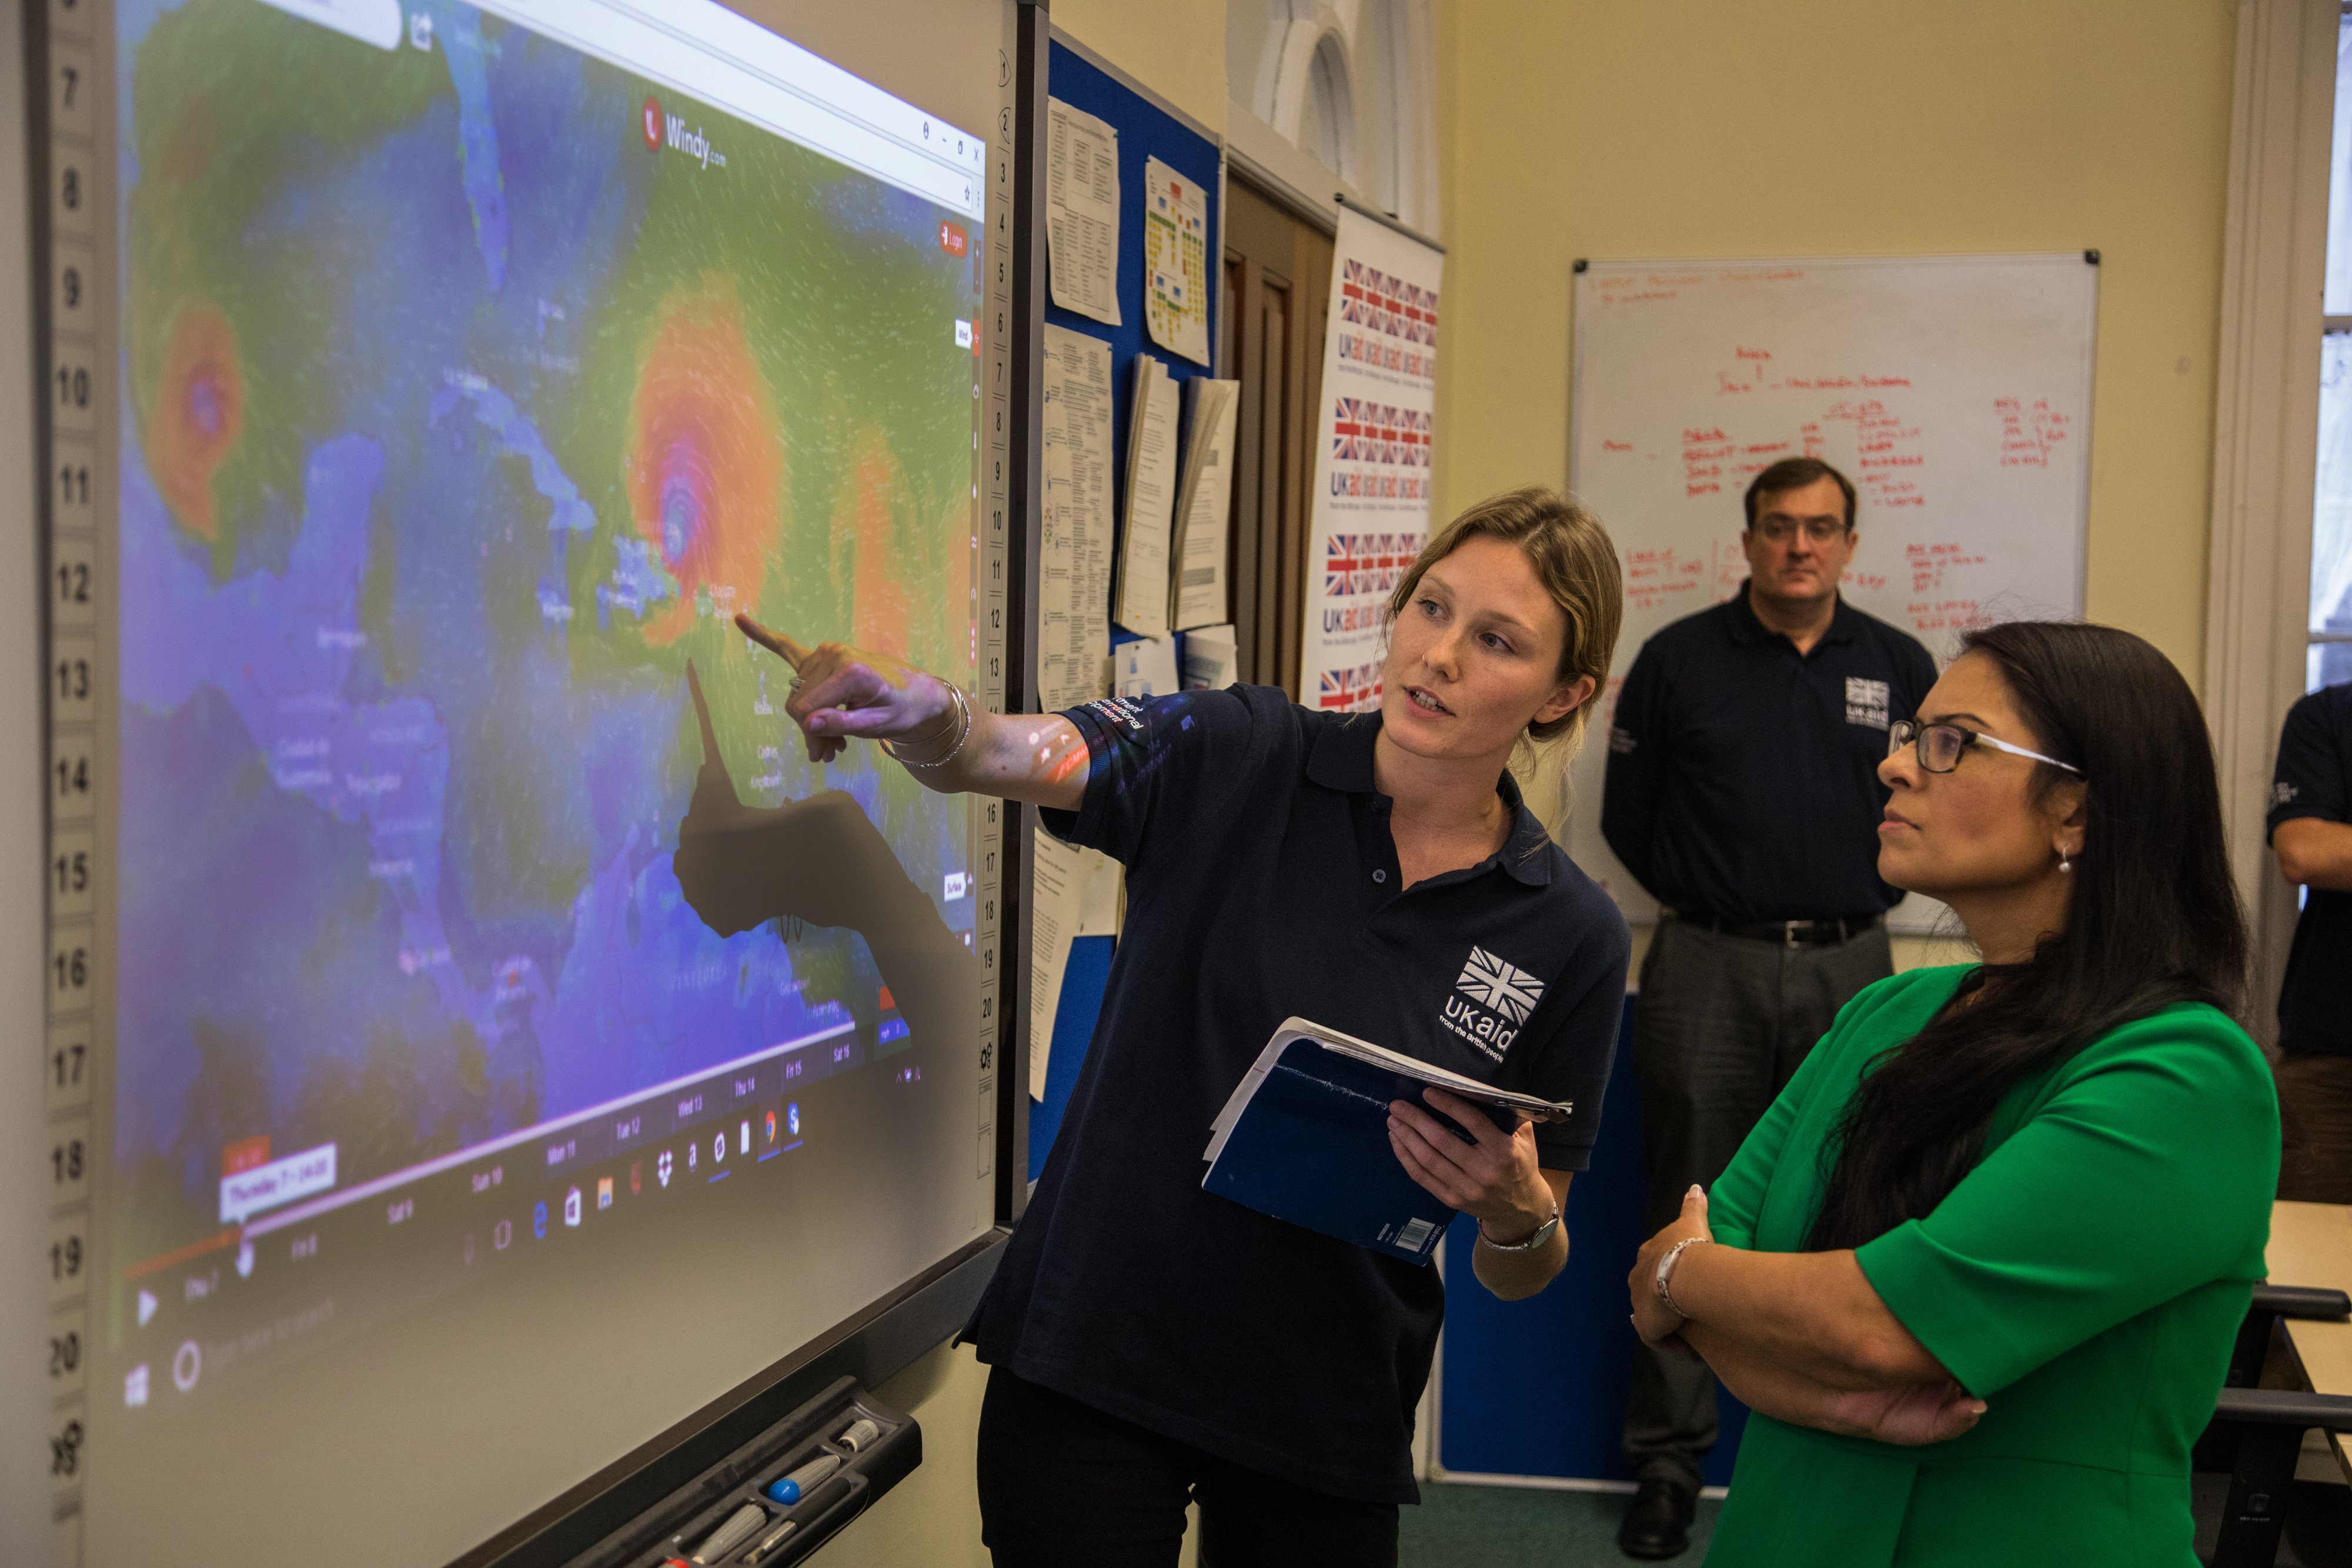 Priti Patel in the DFID UK aid Hurricane Irma Crisis Operations Room, as staff coordinate relief and supplies for those affected. Picture: Michael Hughes/DFID (CC BY 2.0)